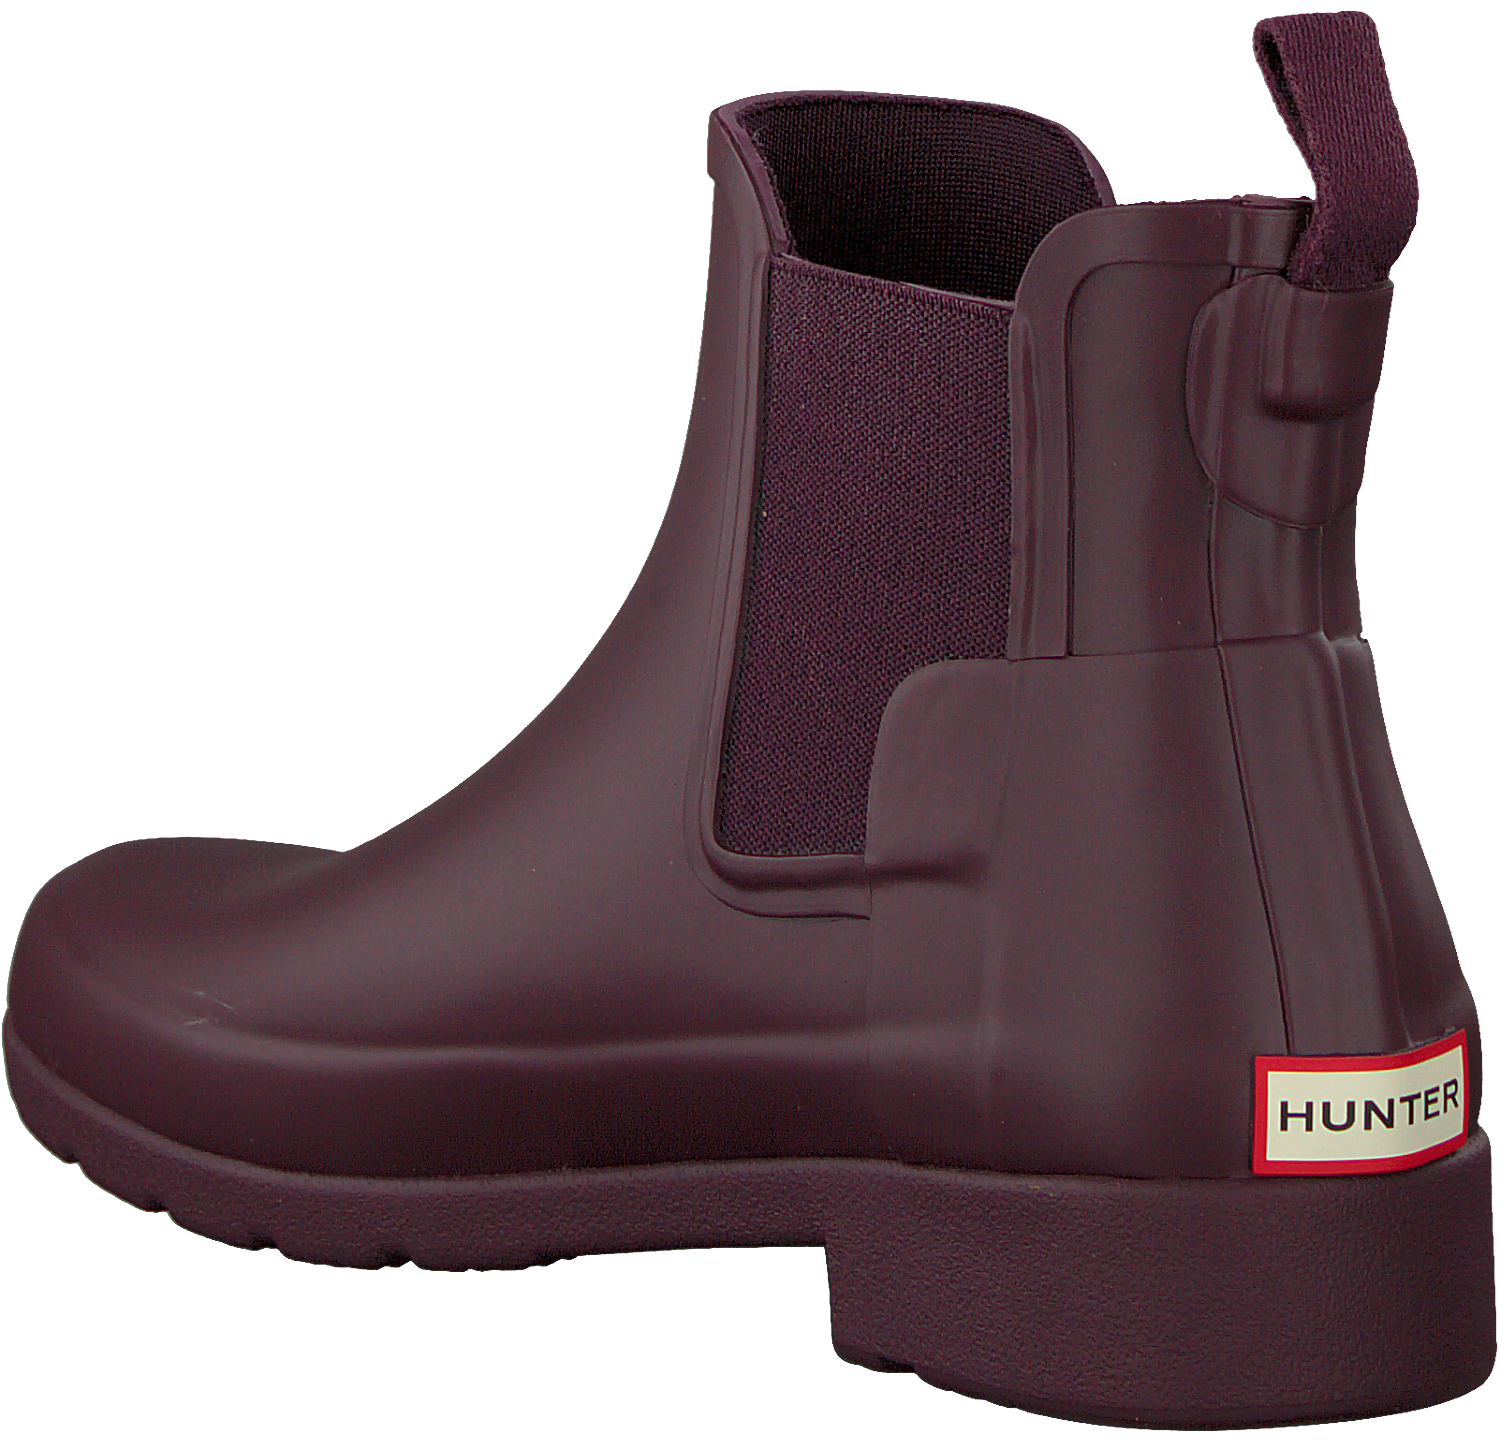 on sale 279ee 094ce Rote HUNTER Gummistiefel ORIGINAL REFINED CHELSEA - Omoda